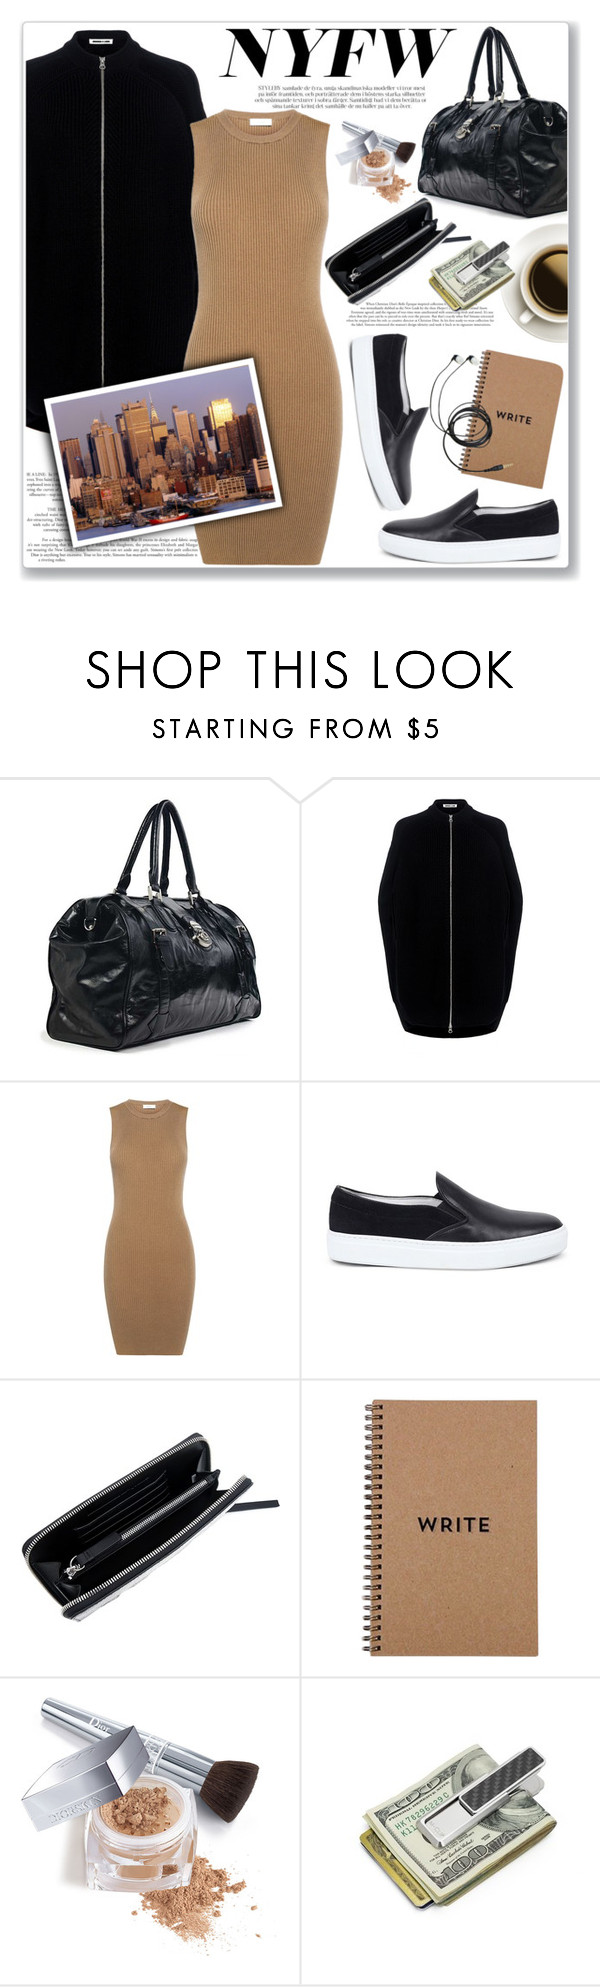 """""""What to Pack: NYFW"""" by ifchic ❤ liked on Polyvore featuring McQ by Alexander McQueen, A.L.C., Amb Ambassadors of minimalism, Christian Dior, M-Clip, NYFW, contestentry, Packandgo and ifchic"""